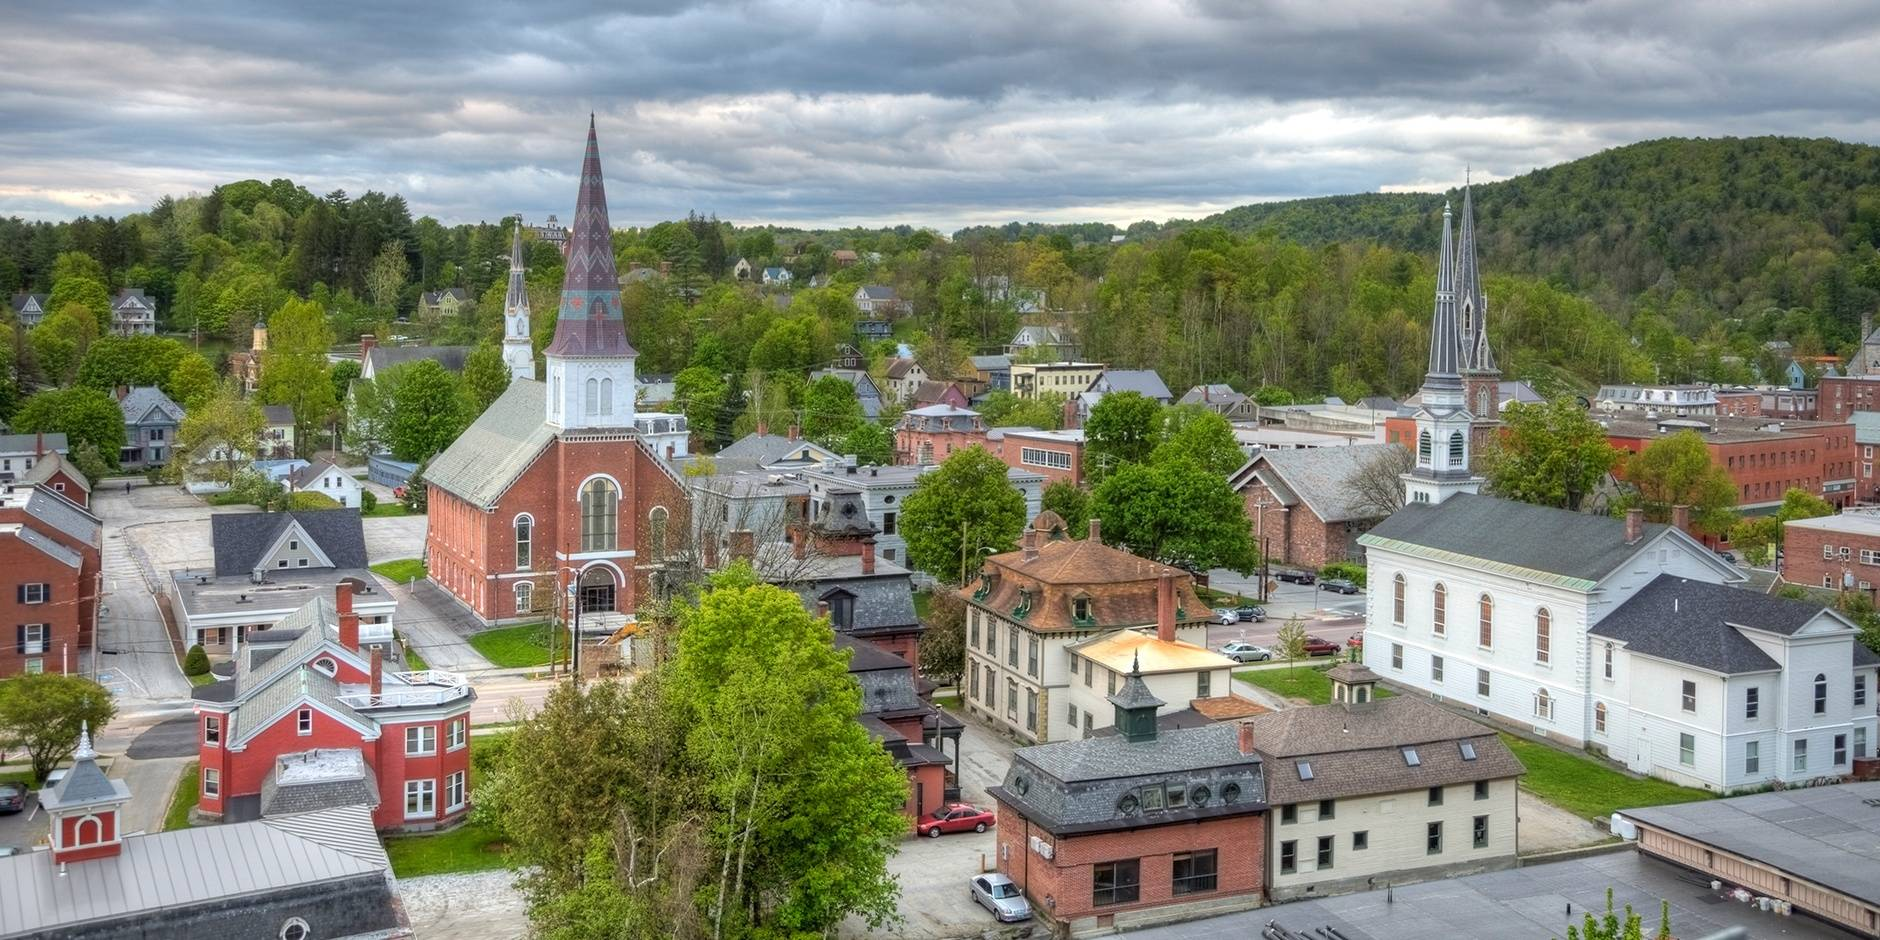 Design Contest to Green up Vermont